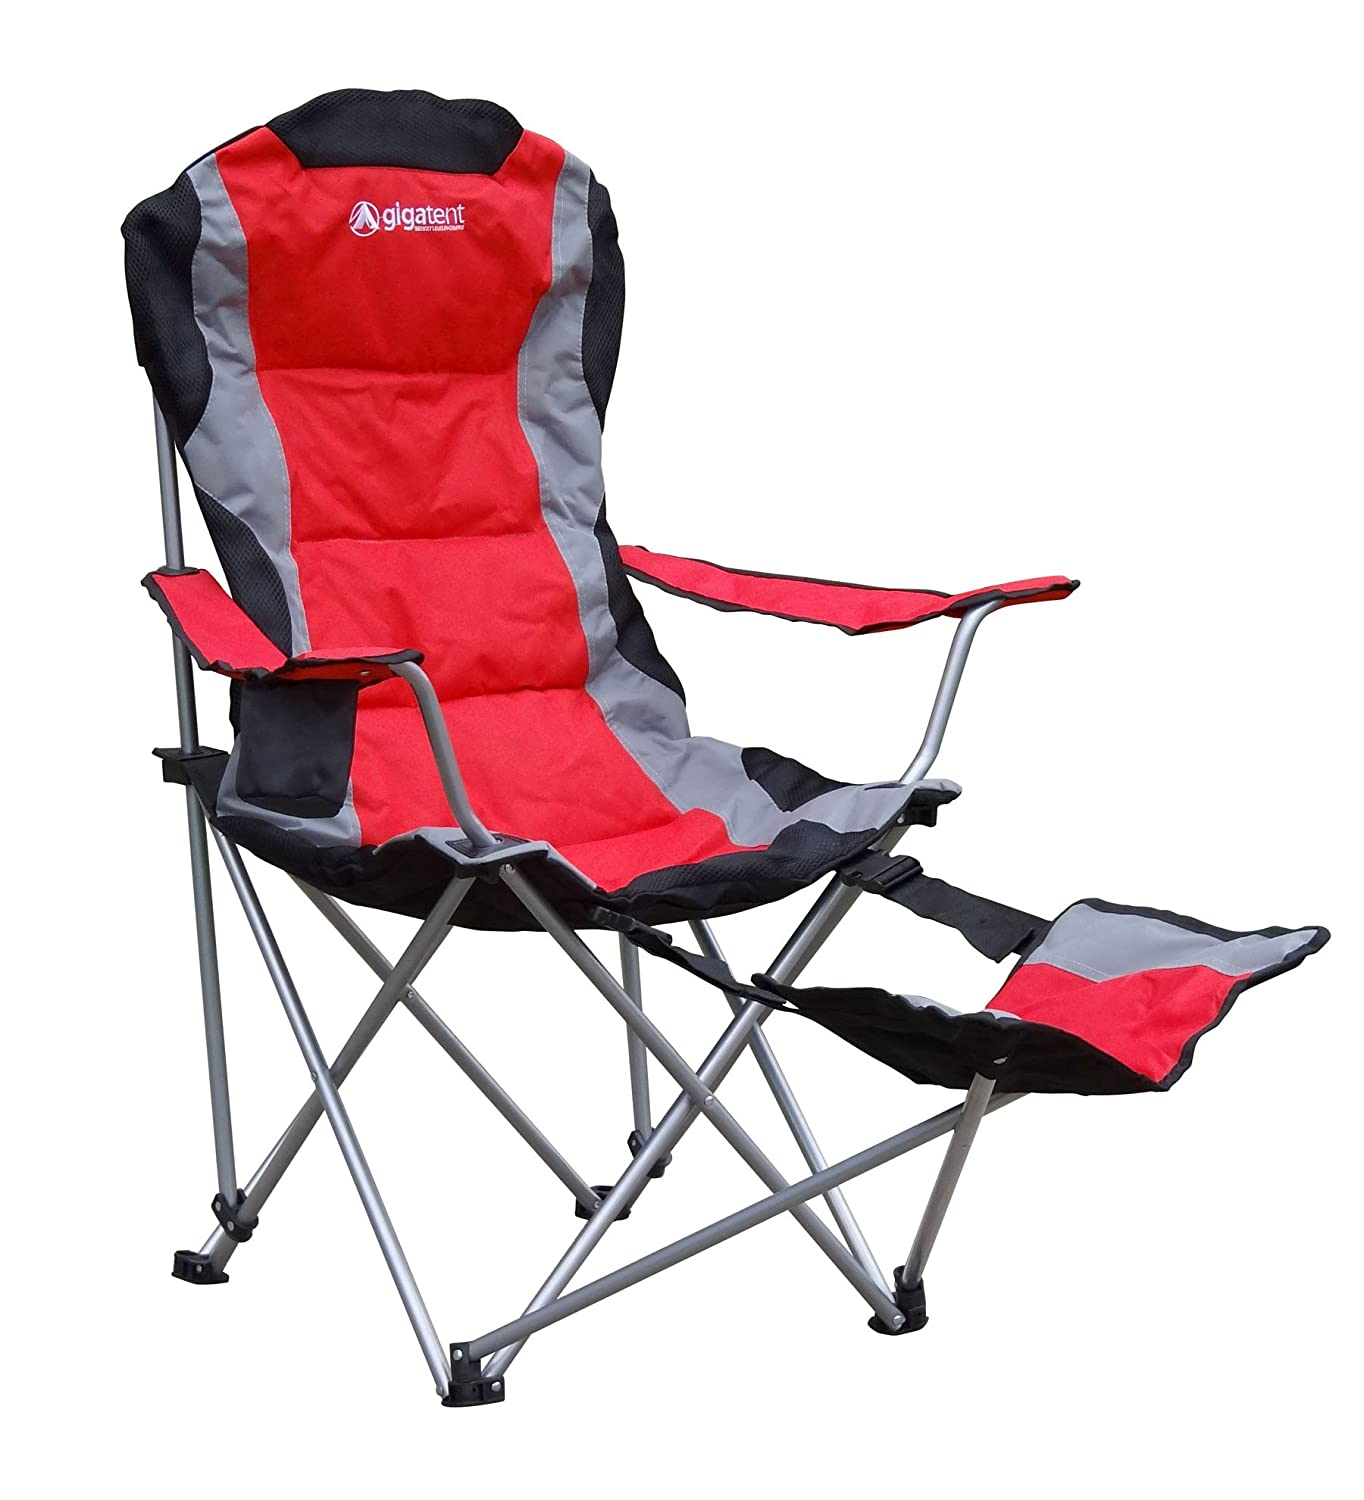 gigatent camping chair with footrest red amazon co uk sports